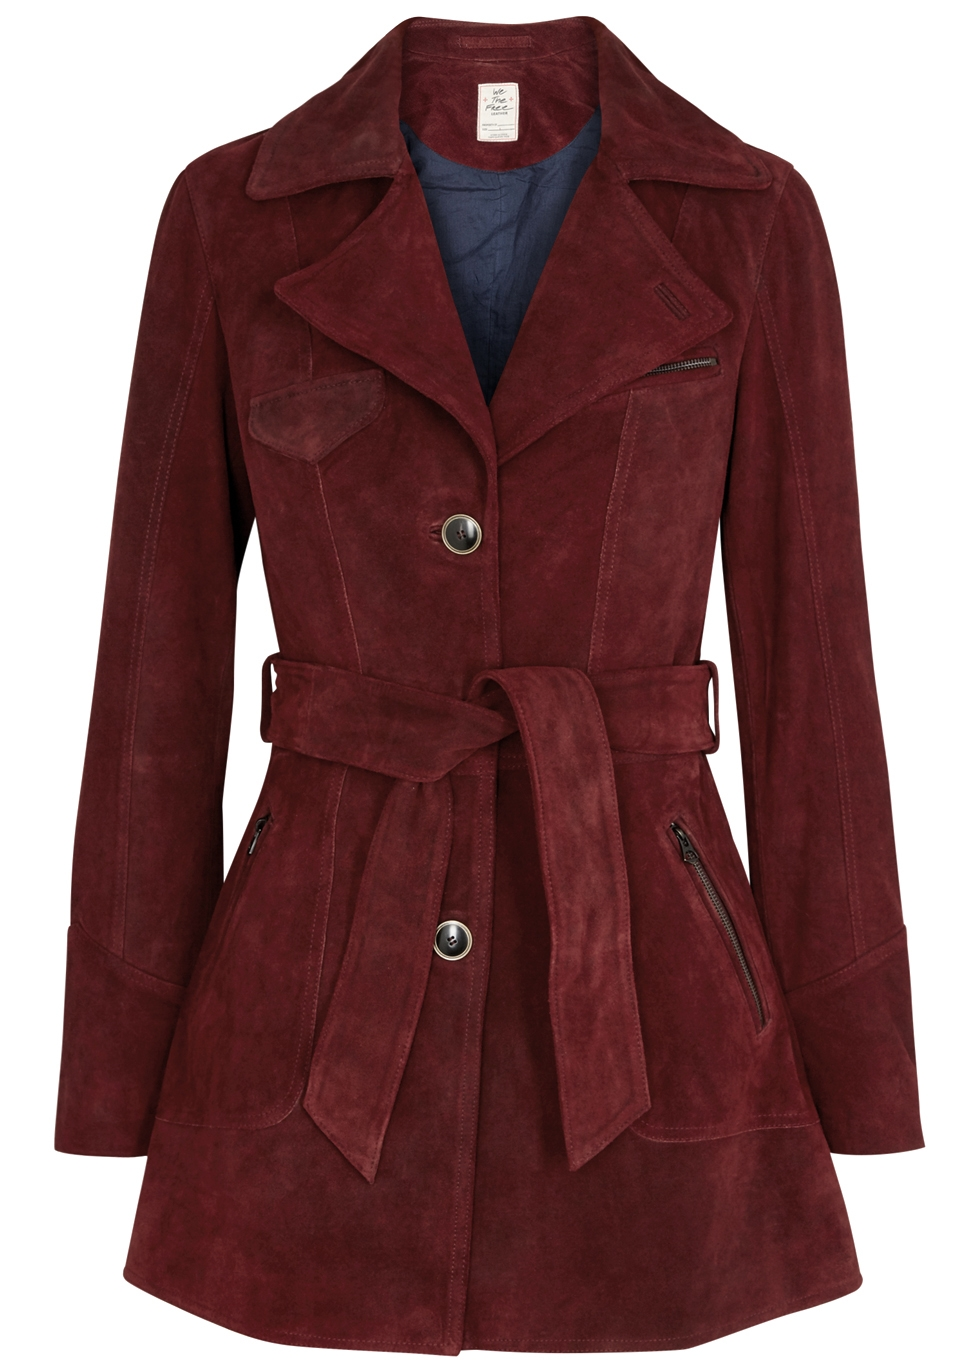 AGENT 99 BORDEAUX SUEDE JACKET